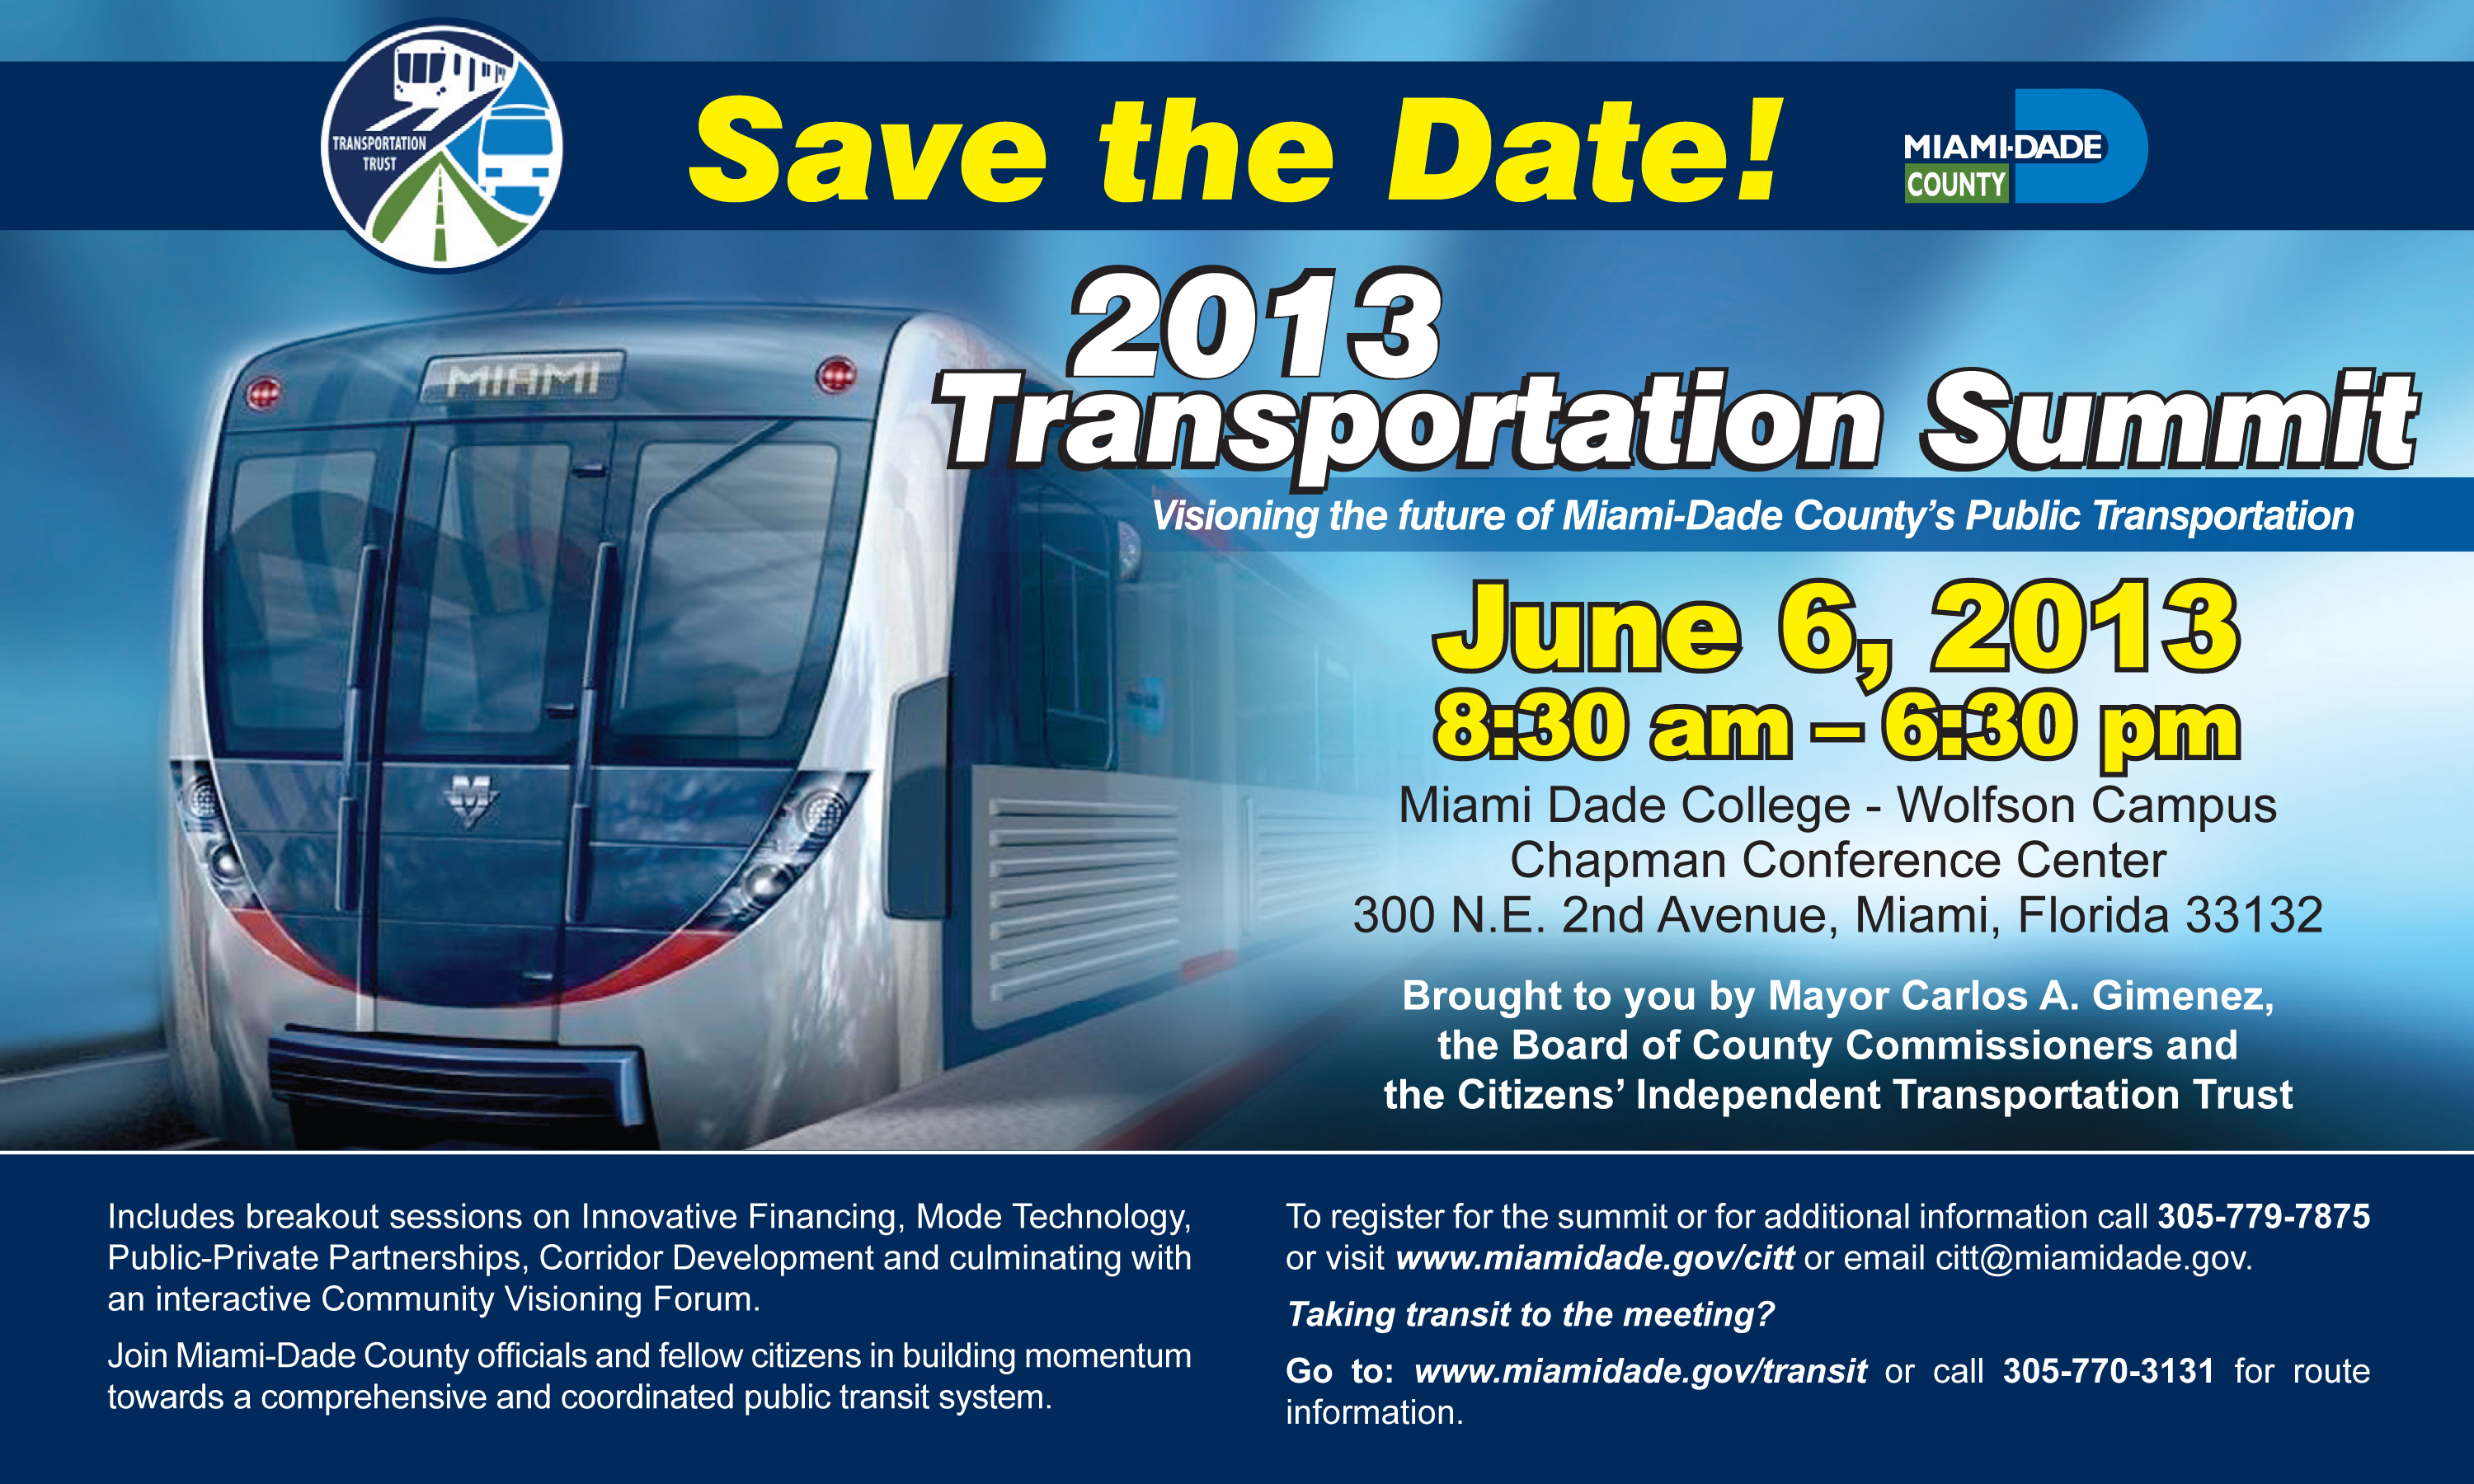 CITT_Transportation Summit 2013_Ad_10X6_ENG